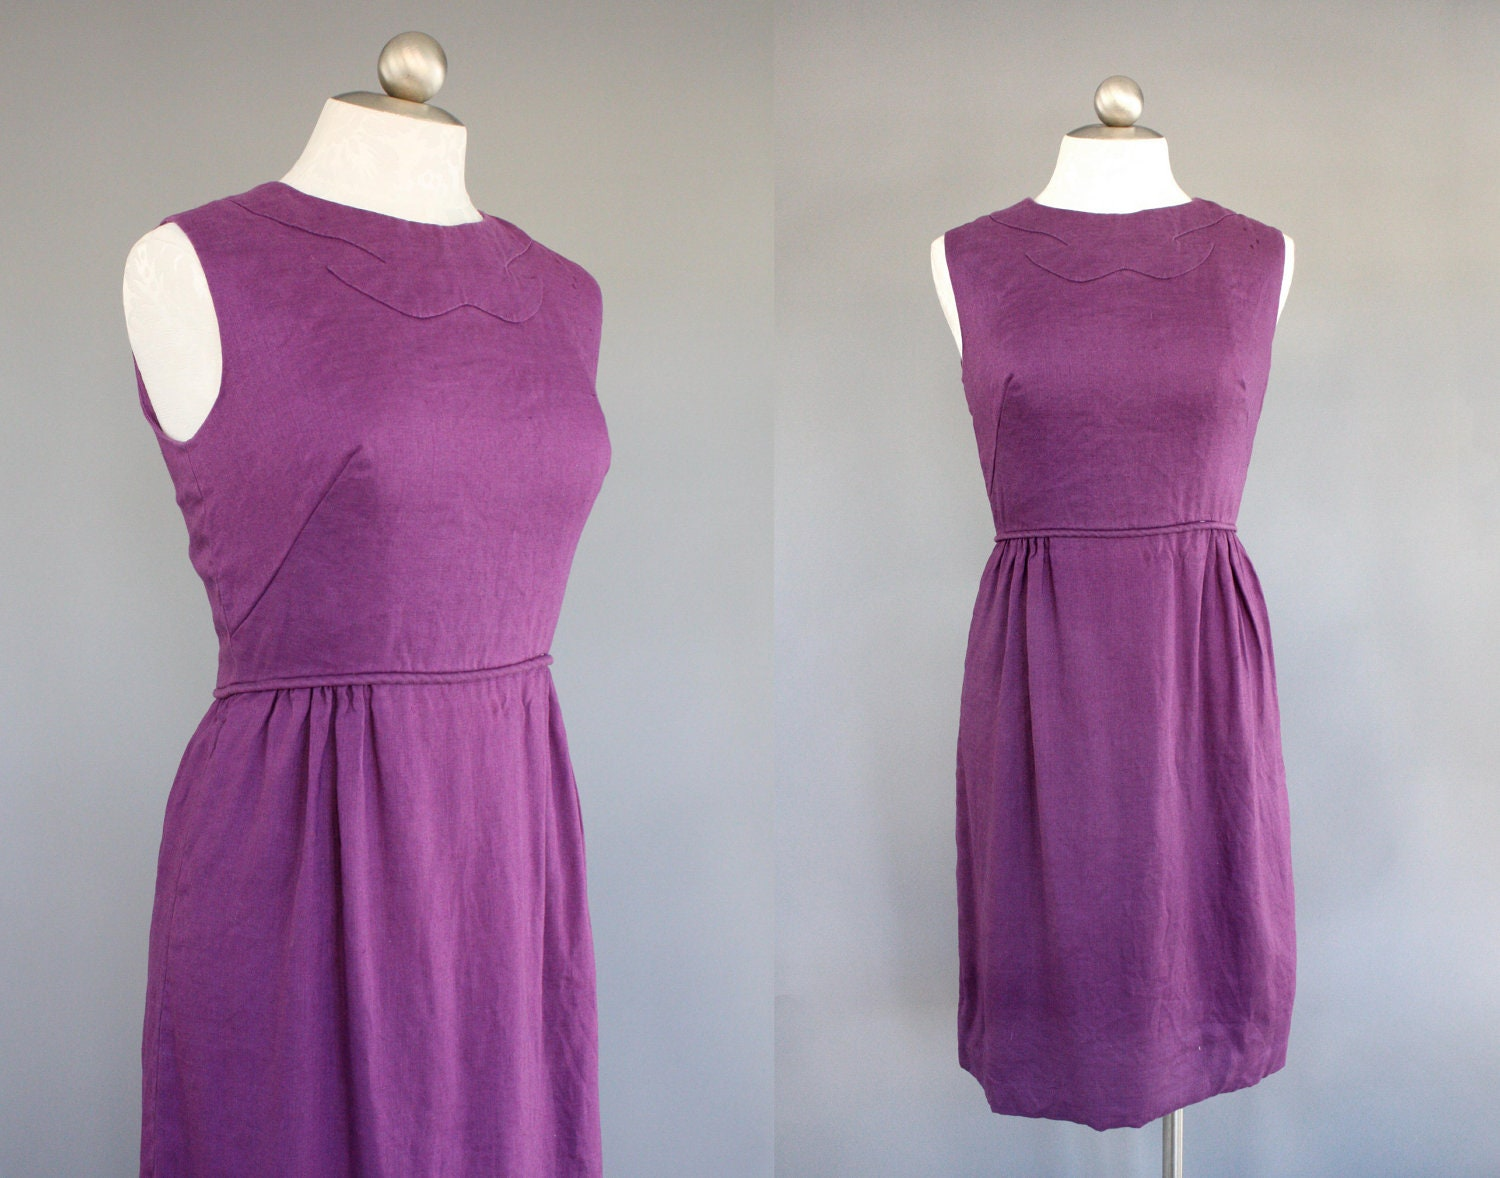 50s - 60s vintage dress in Purple Linen / size small - medium S - M - AnatomyVintage